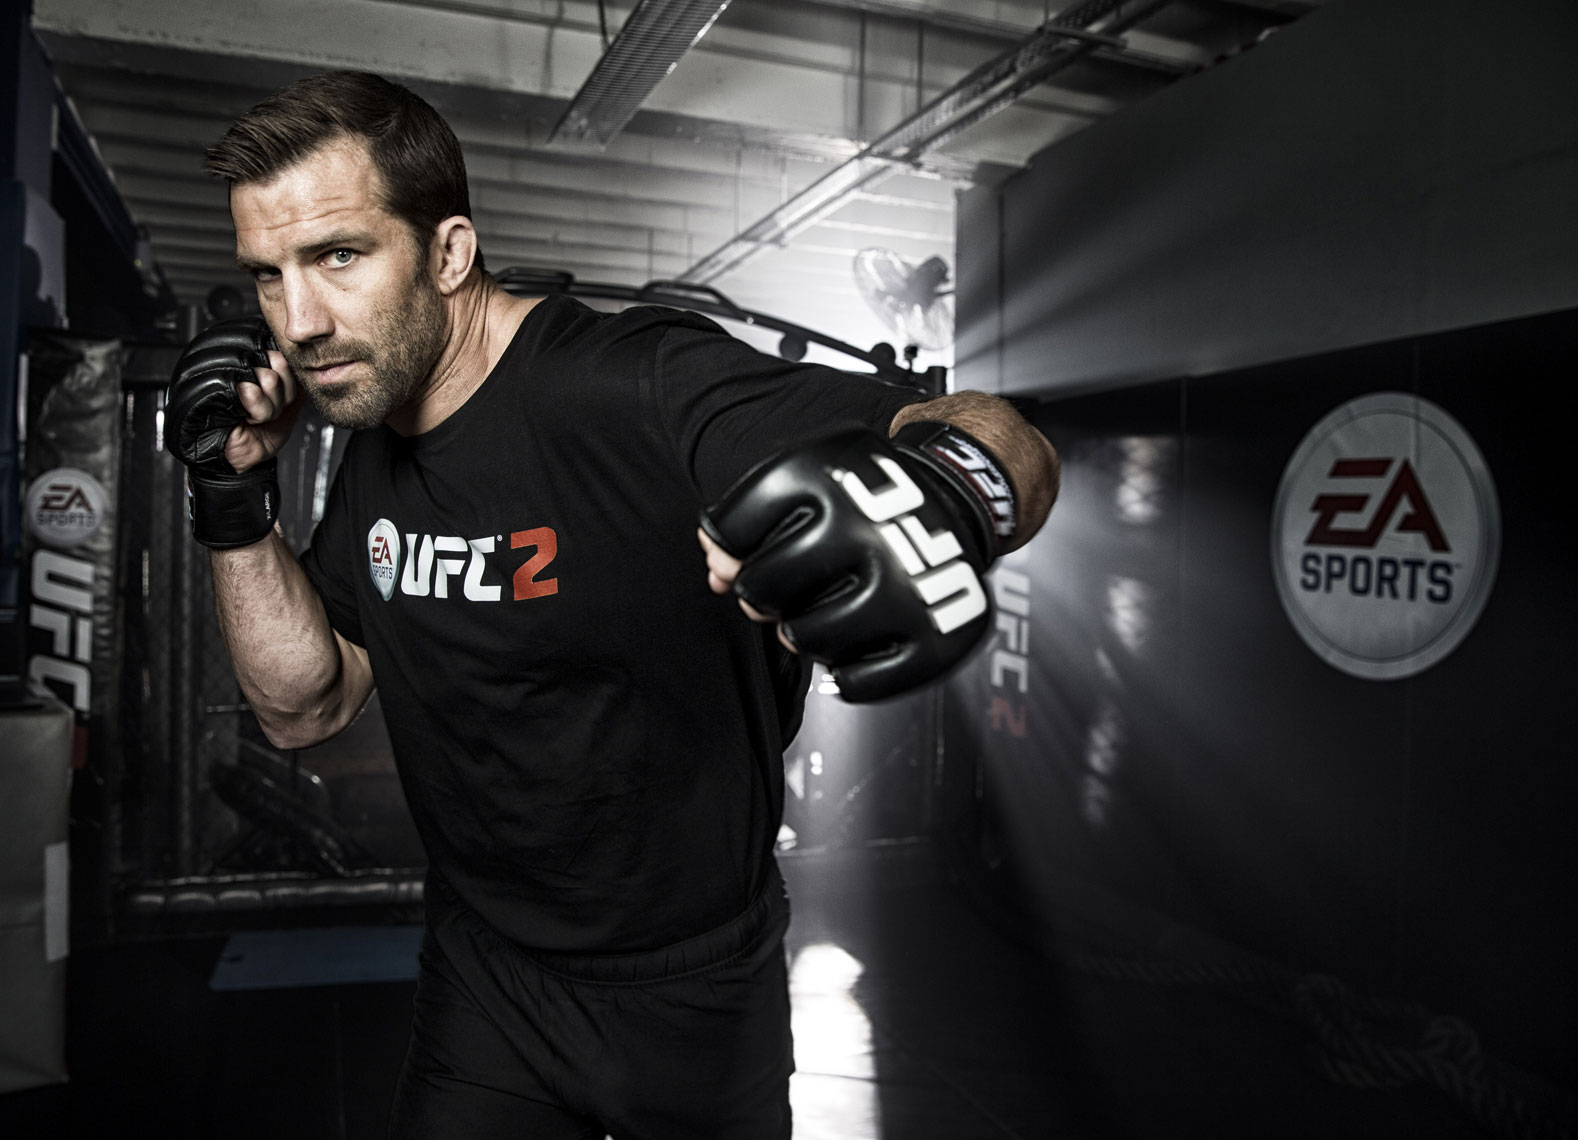 Luke Rockhold UFC 2 EA Sports  © Mark Robinson Photography